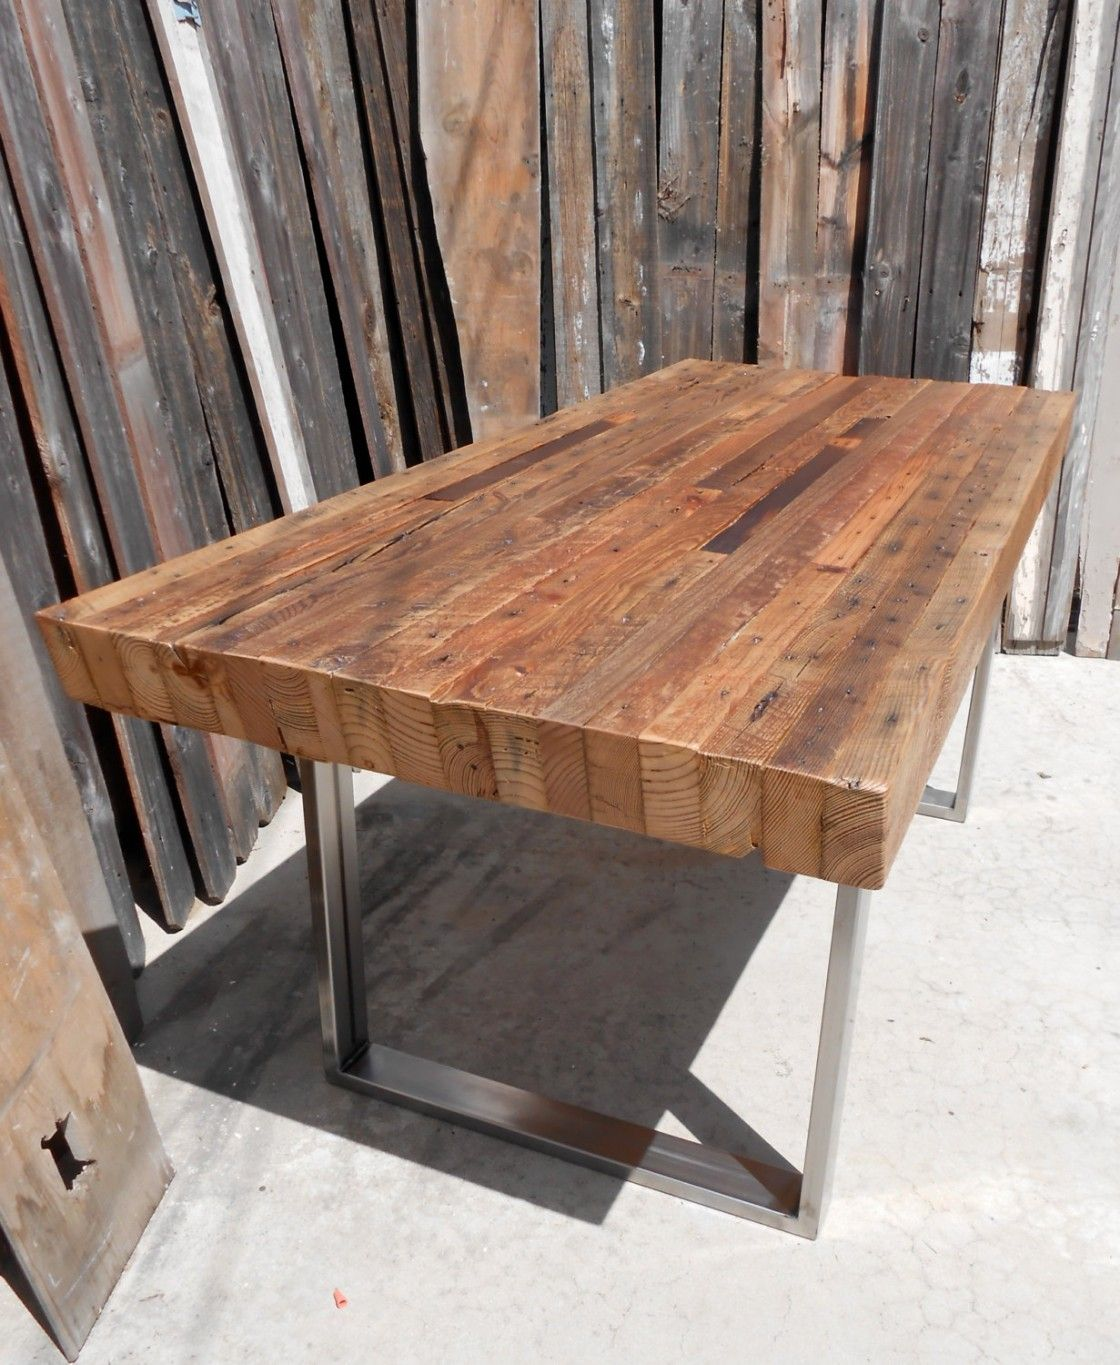 simple rectangle reclaimed natural teak wood wood dining table design by using - Teak Wood Dining Table